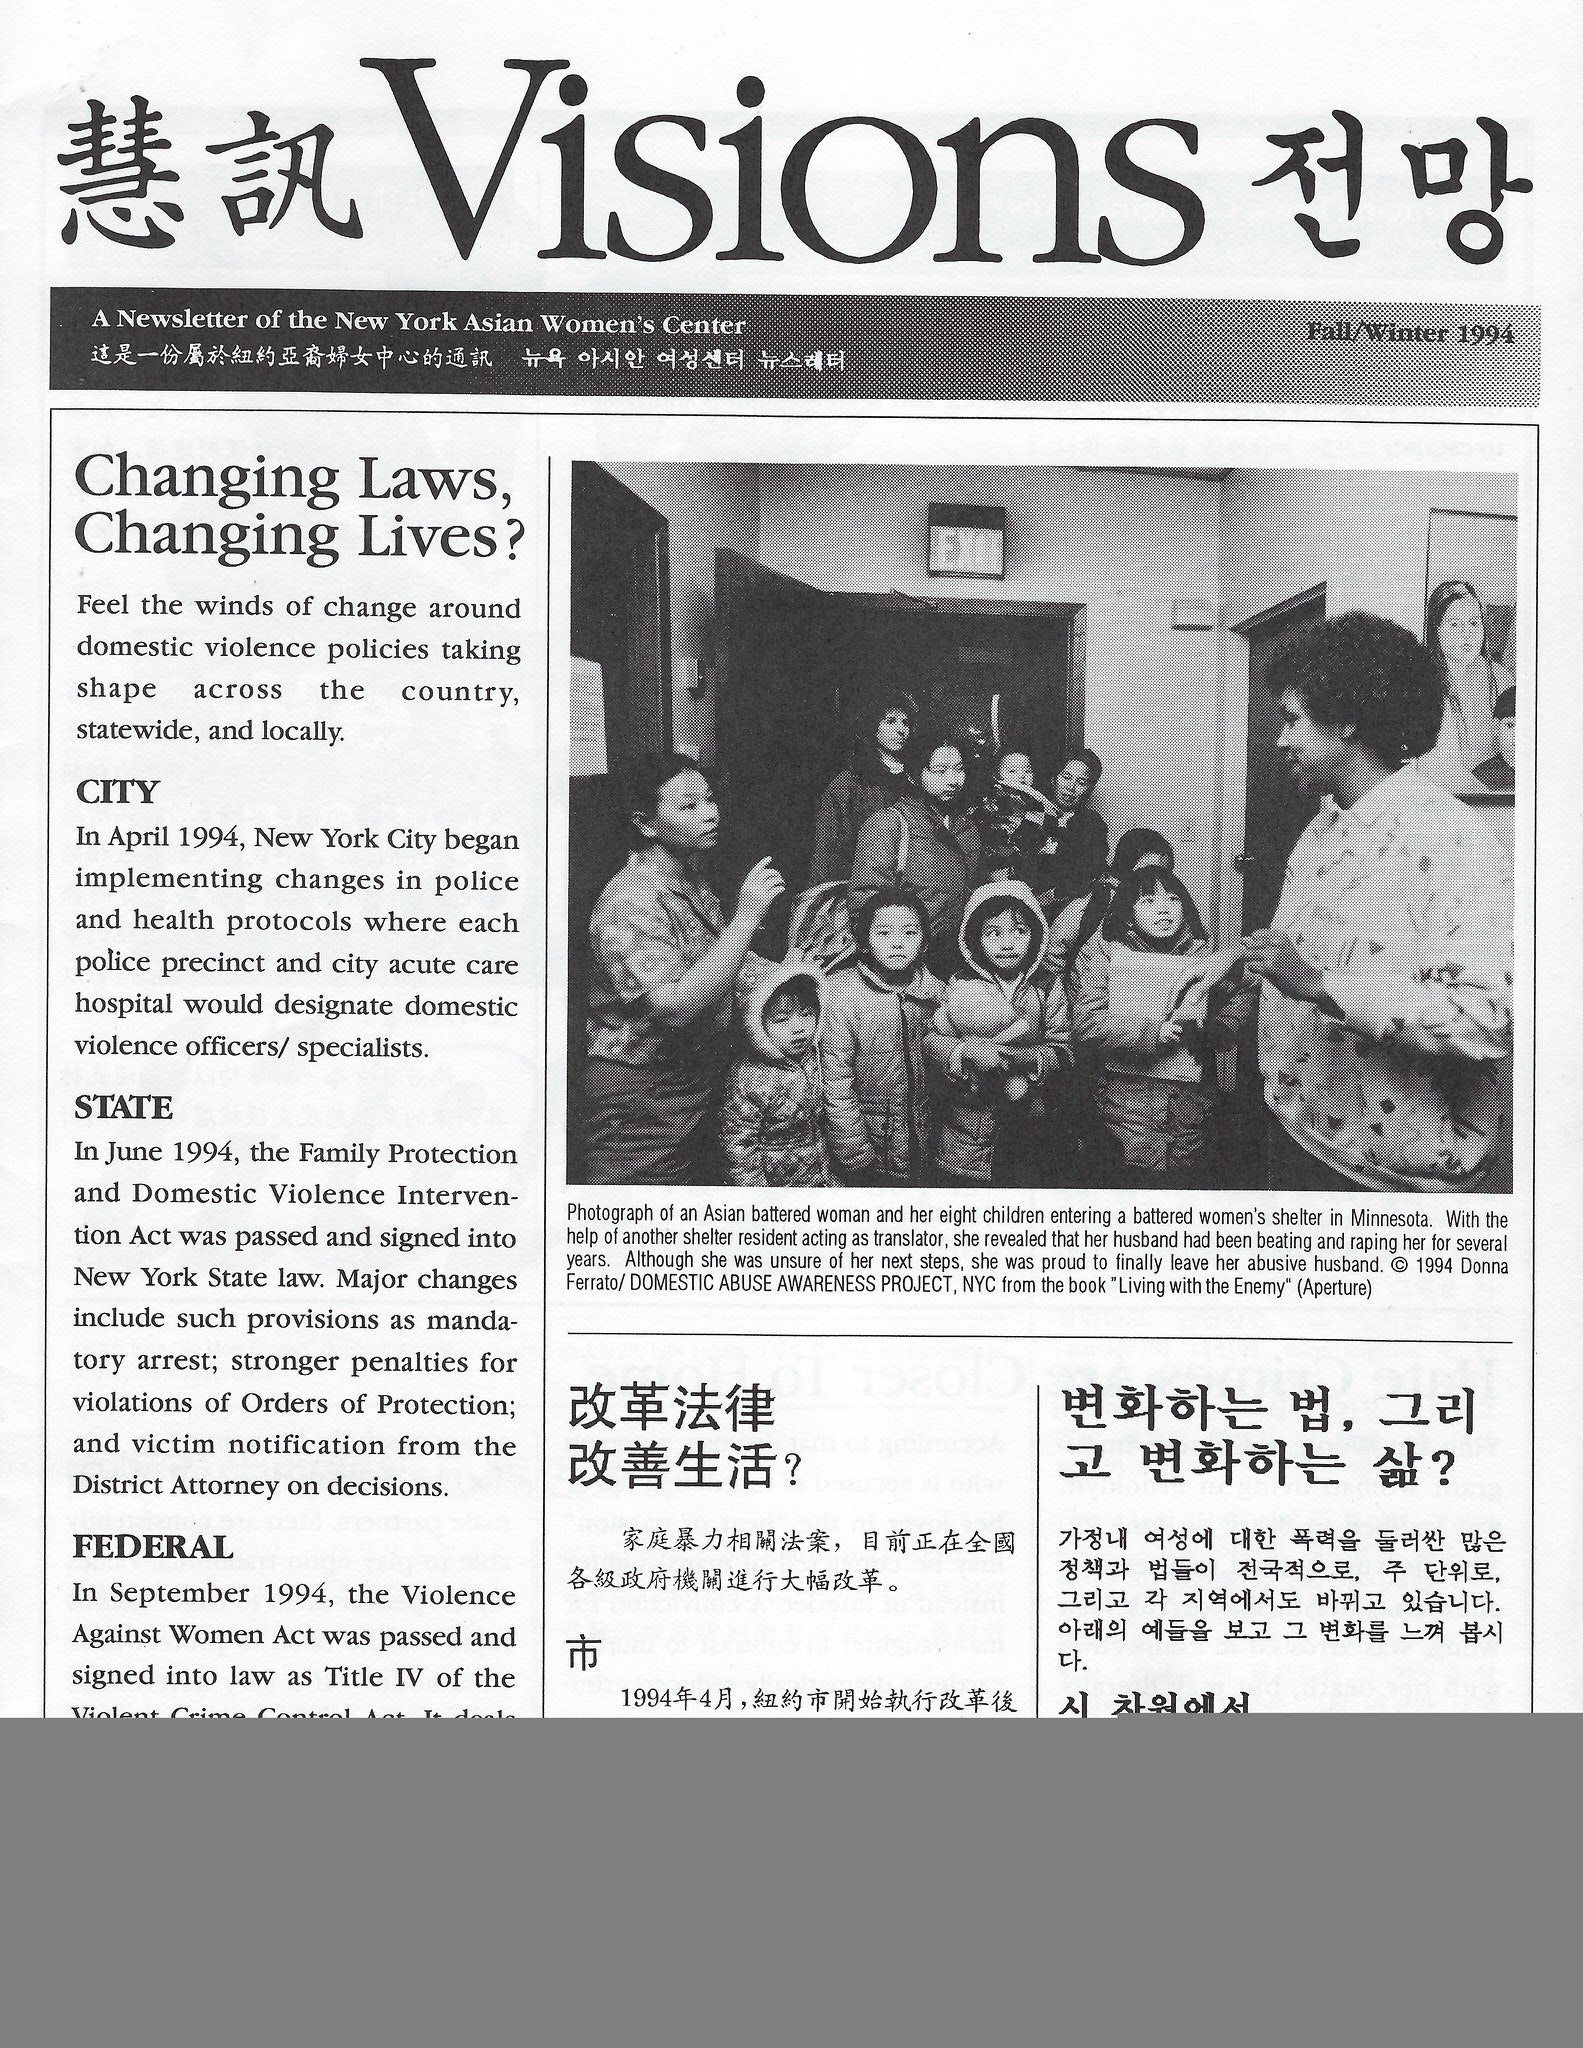 Visions Newsletter front page in black and white, with featured image of a battered women's shelter in Minnesota